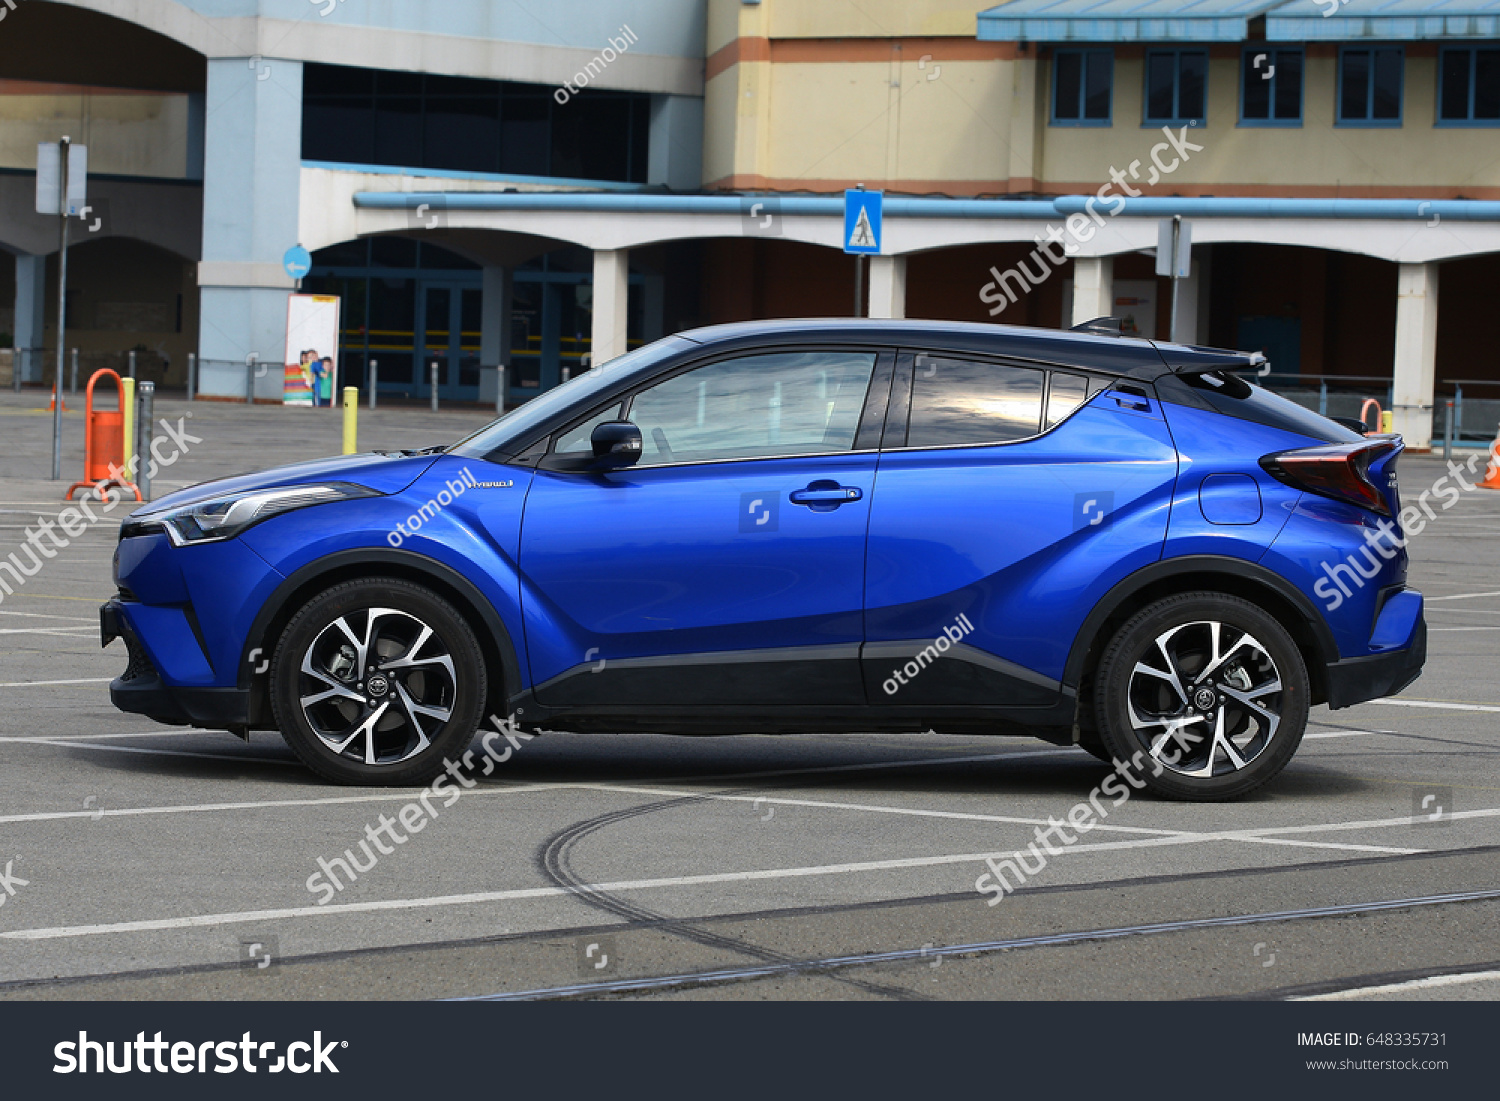 toyota april on mai car hybrid thailand subcompact city crossover new to road chiang no suv chiangmai chr